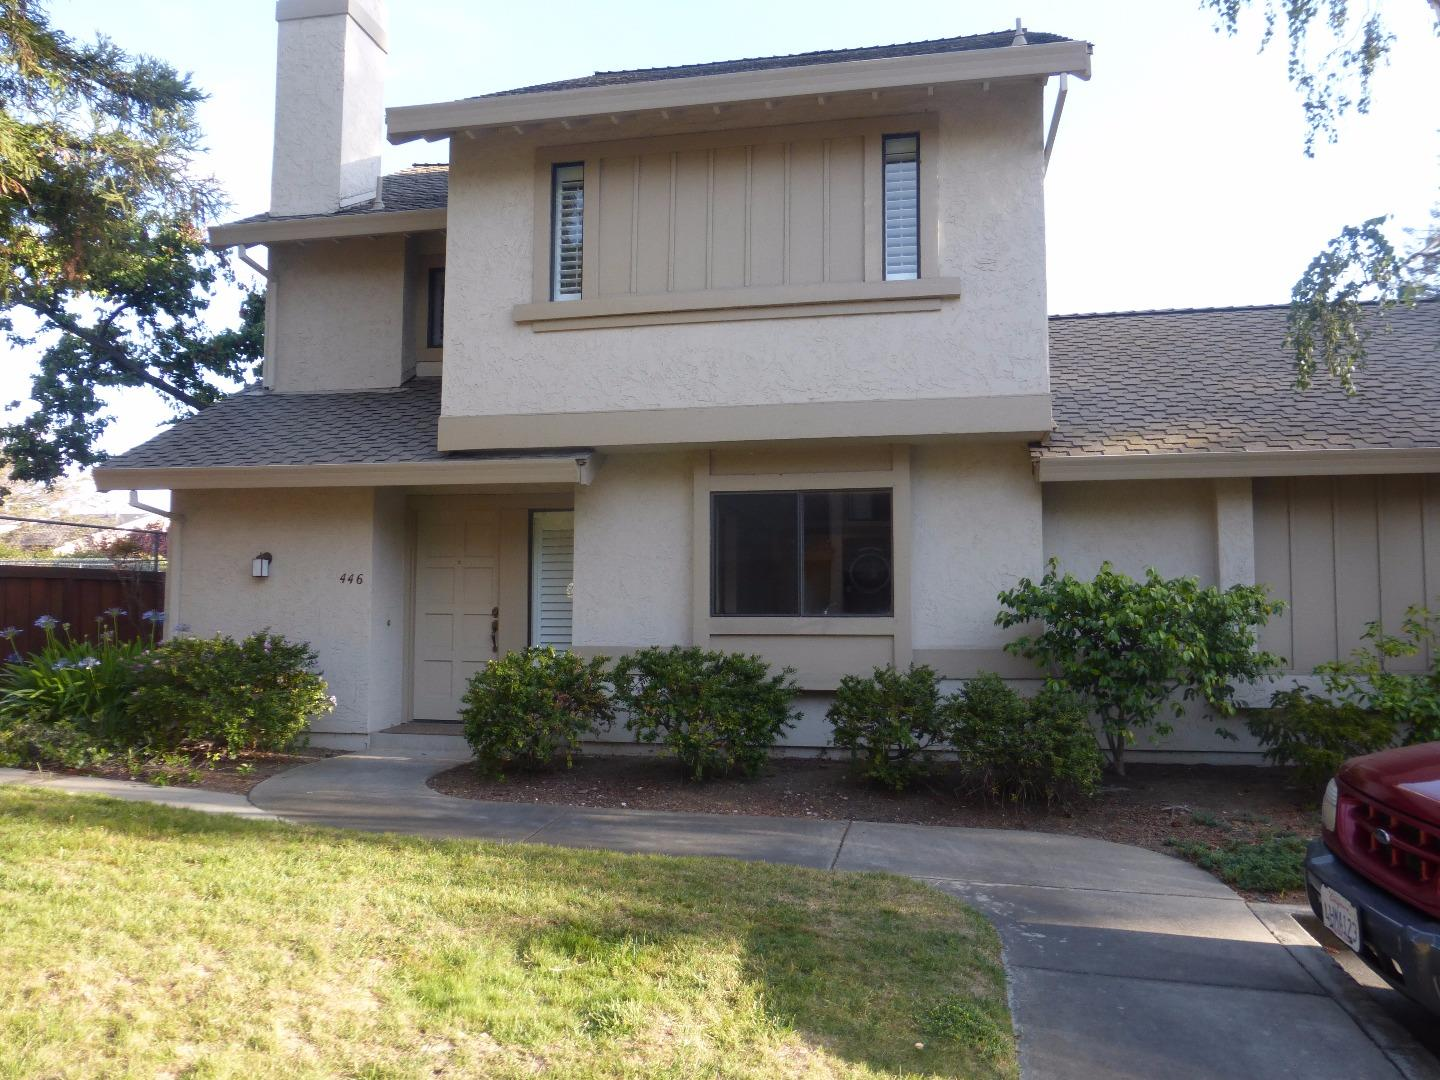 Single Family Home for Rent at 446 Hogarth Terrace Sunnyvale, California 94087 United States